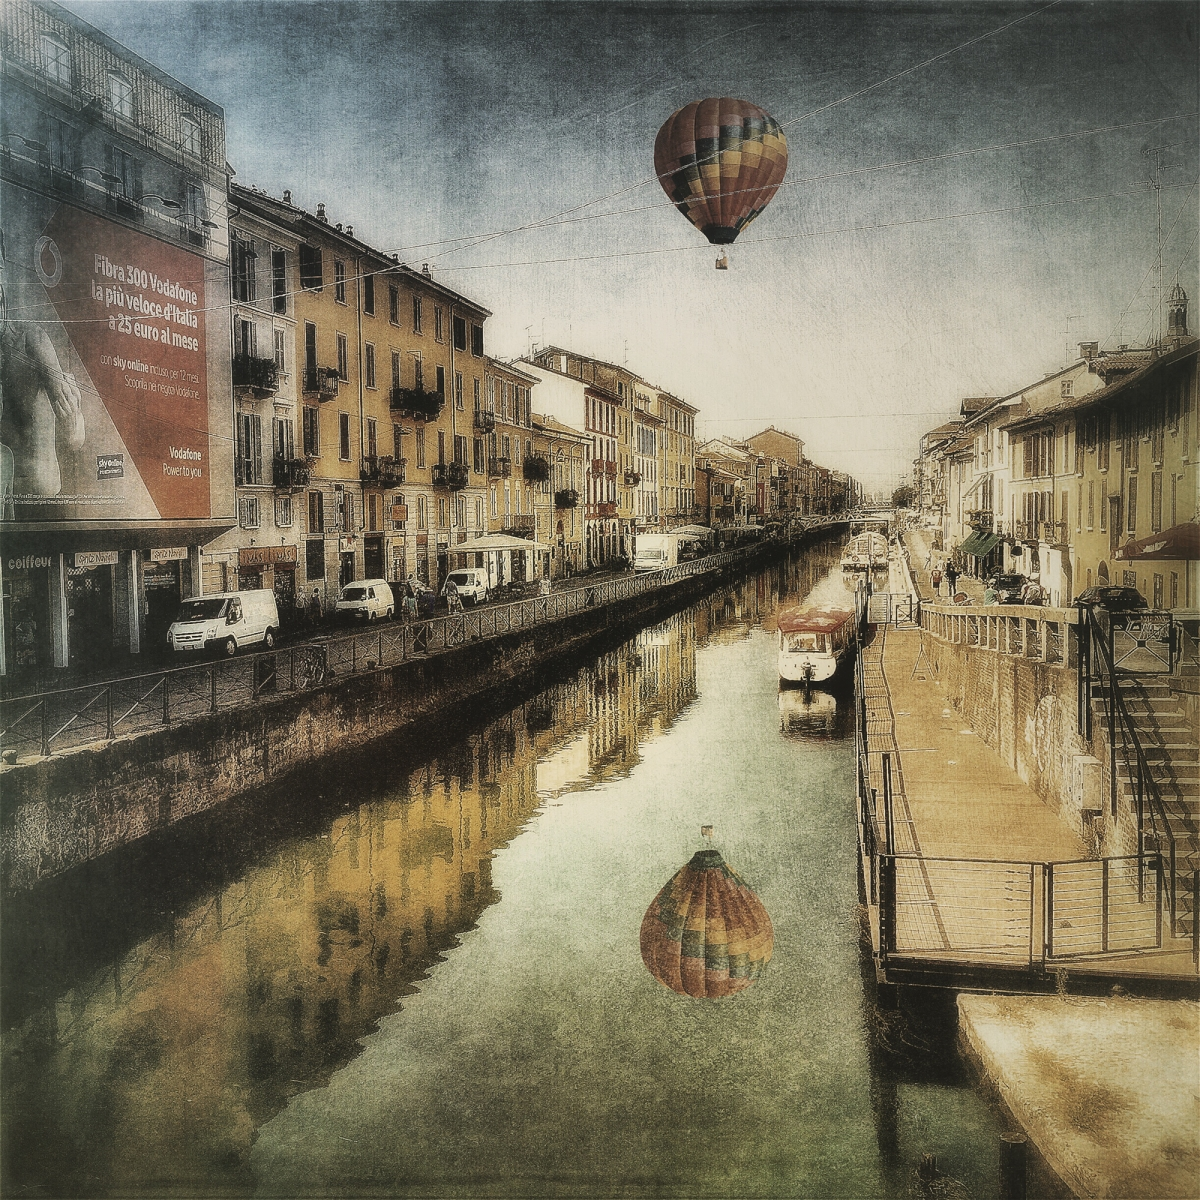 air balloon over the canal